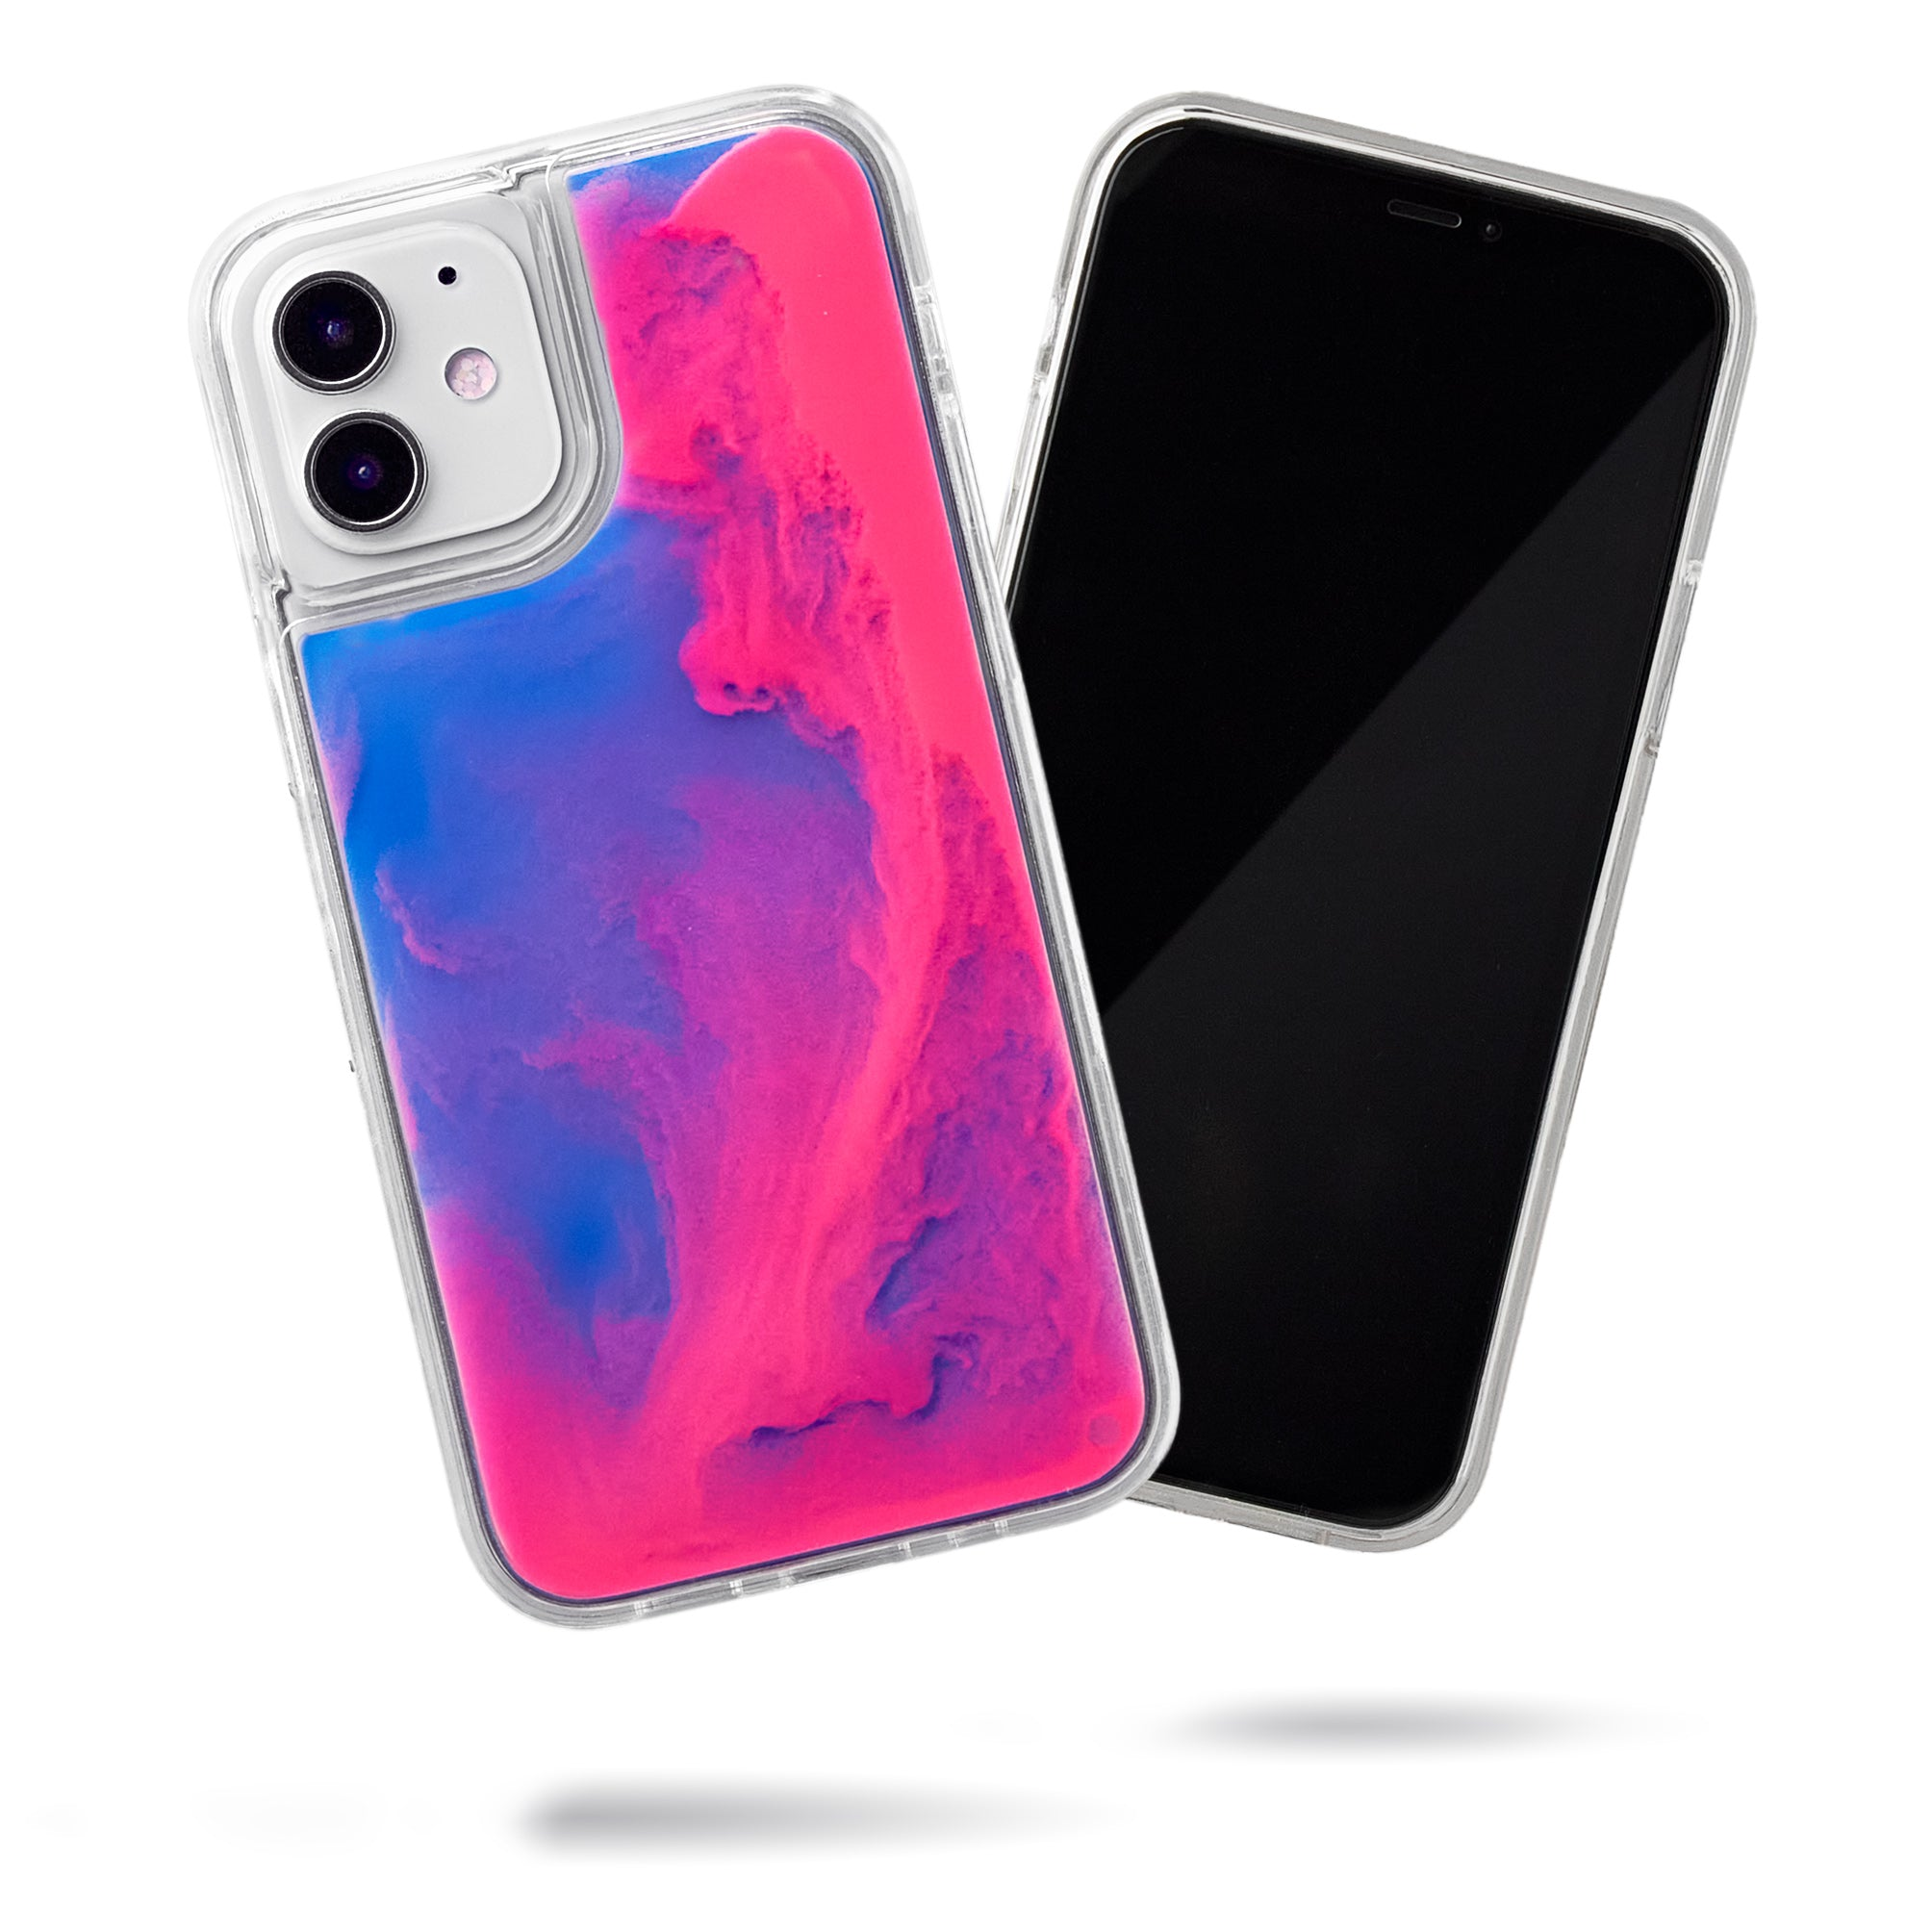 Neon Sand iPhone 12 Mini Case - Blueberry and Pink Glow